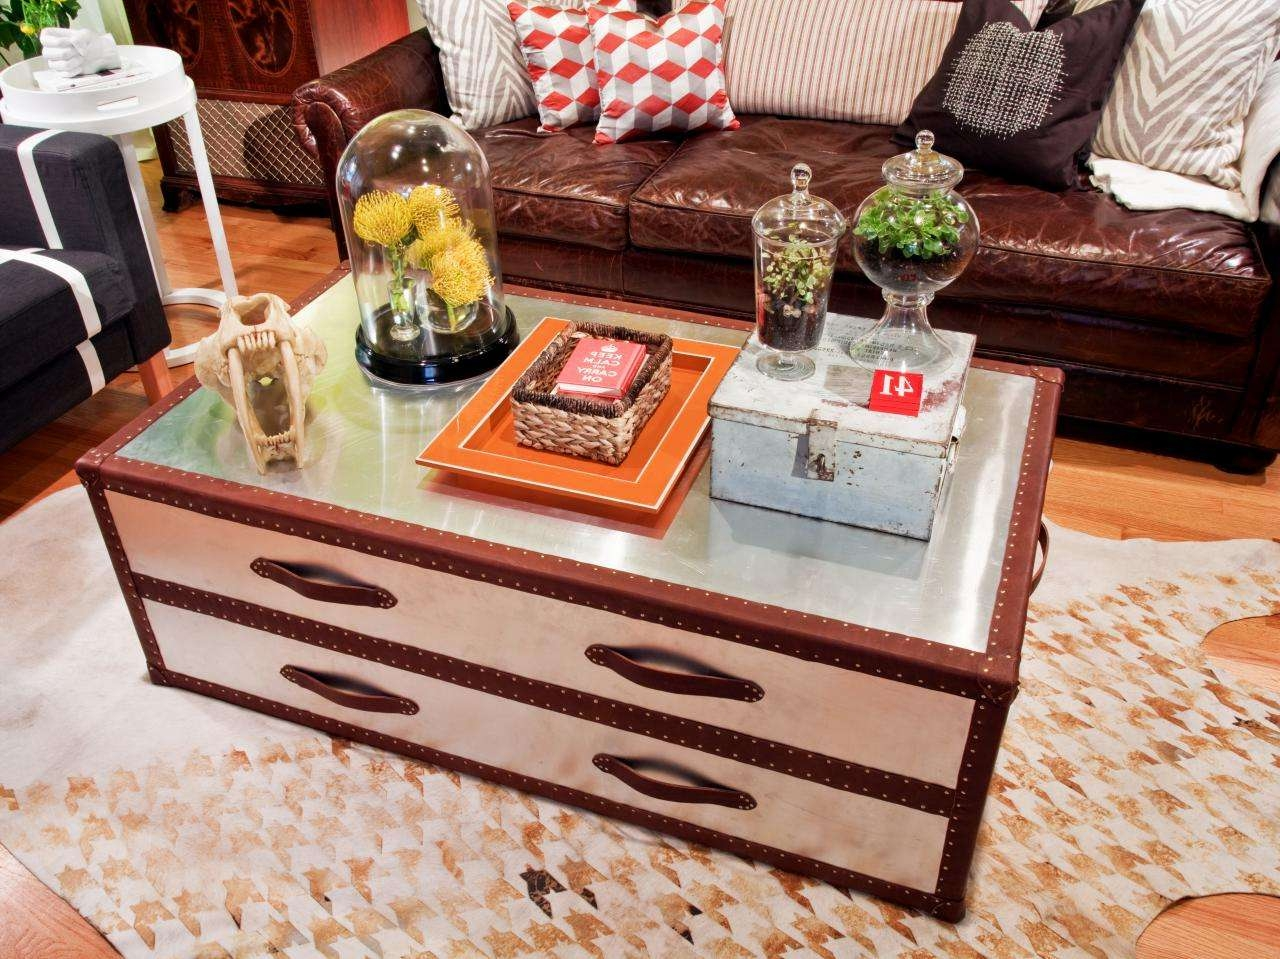 Trunk Coffee Tables In Wonderful Looks! — Home Design Ideas Intended For Fashionable Steamer Trunk Stainless Steel Coffee Tables (View 2 of 20)